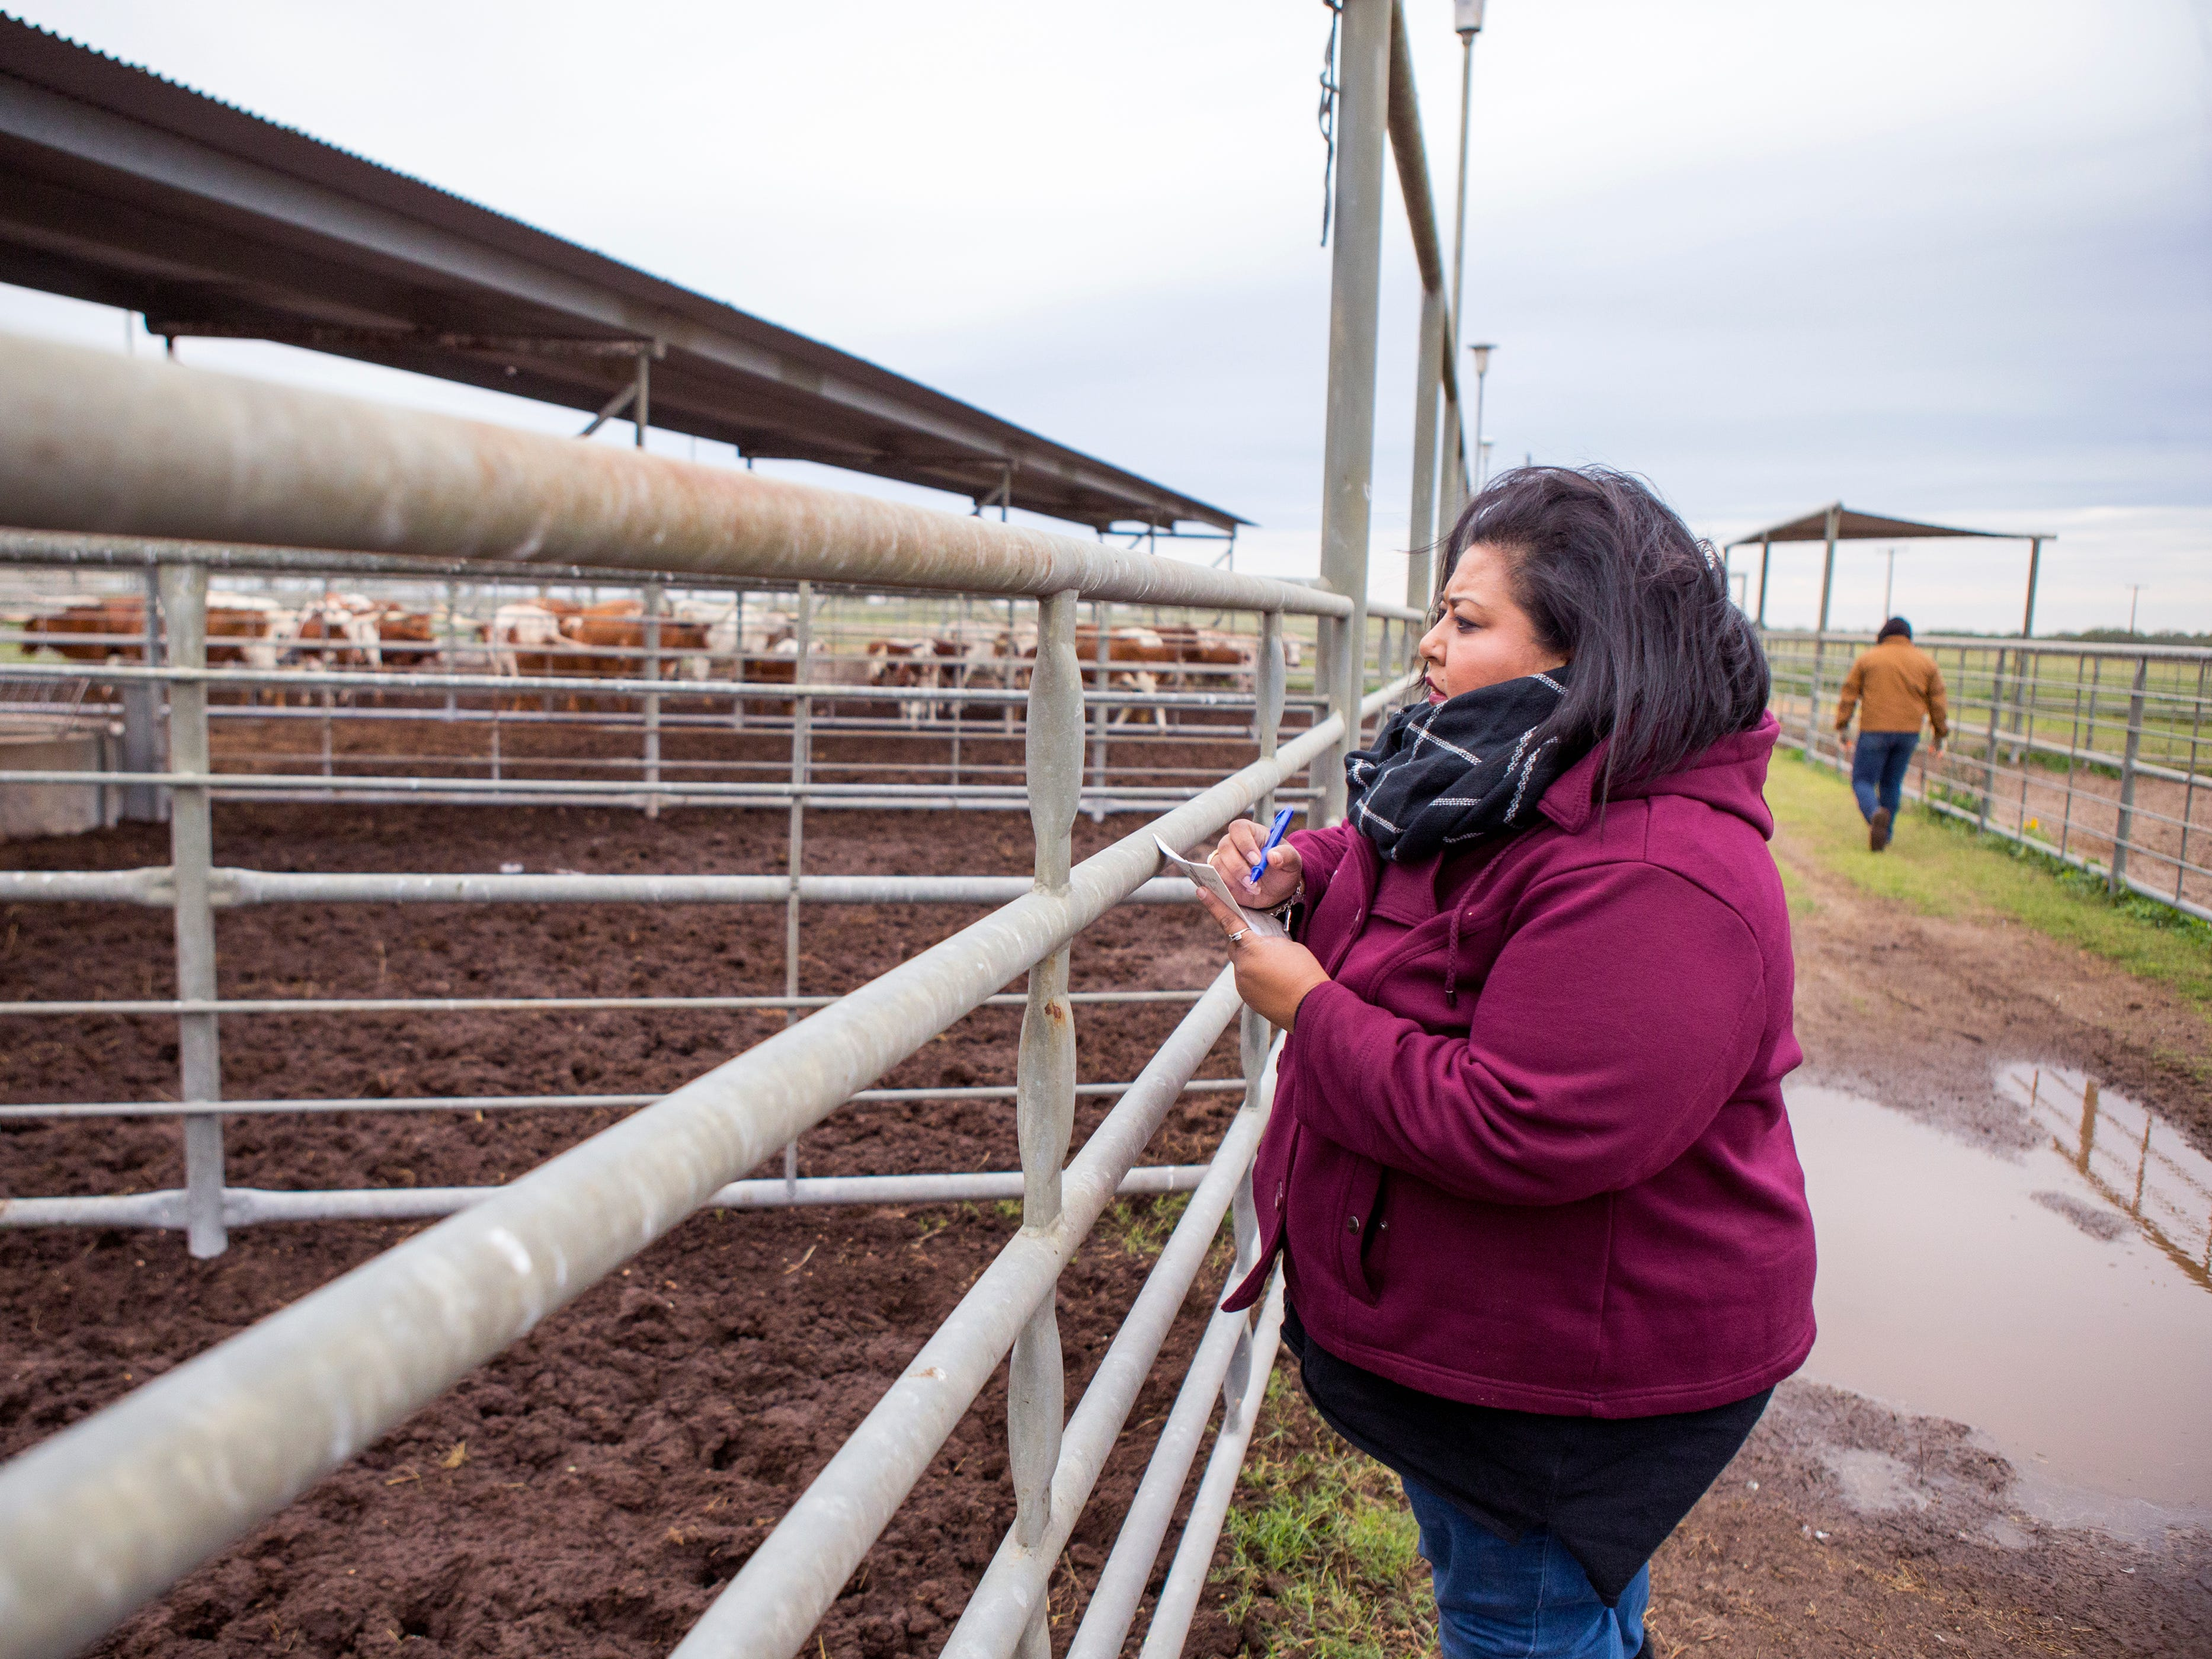 Della Serna follows father's ranching footsteps on a ranch near Kingsville she grew up on